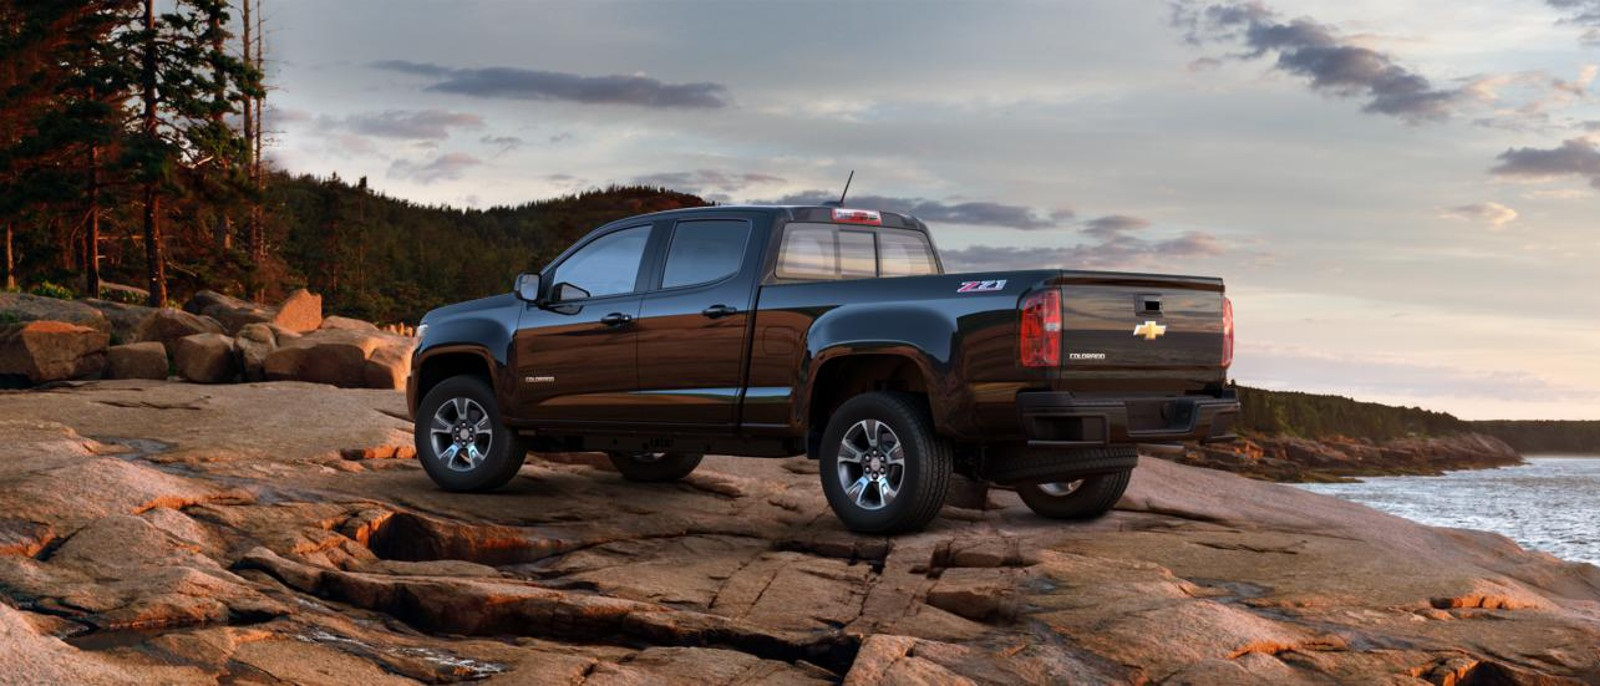 2017 Chevy Colorado is Coming to Bradenton and Memphis